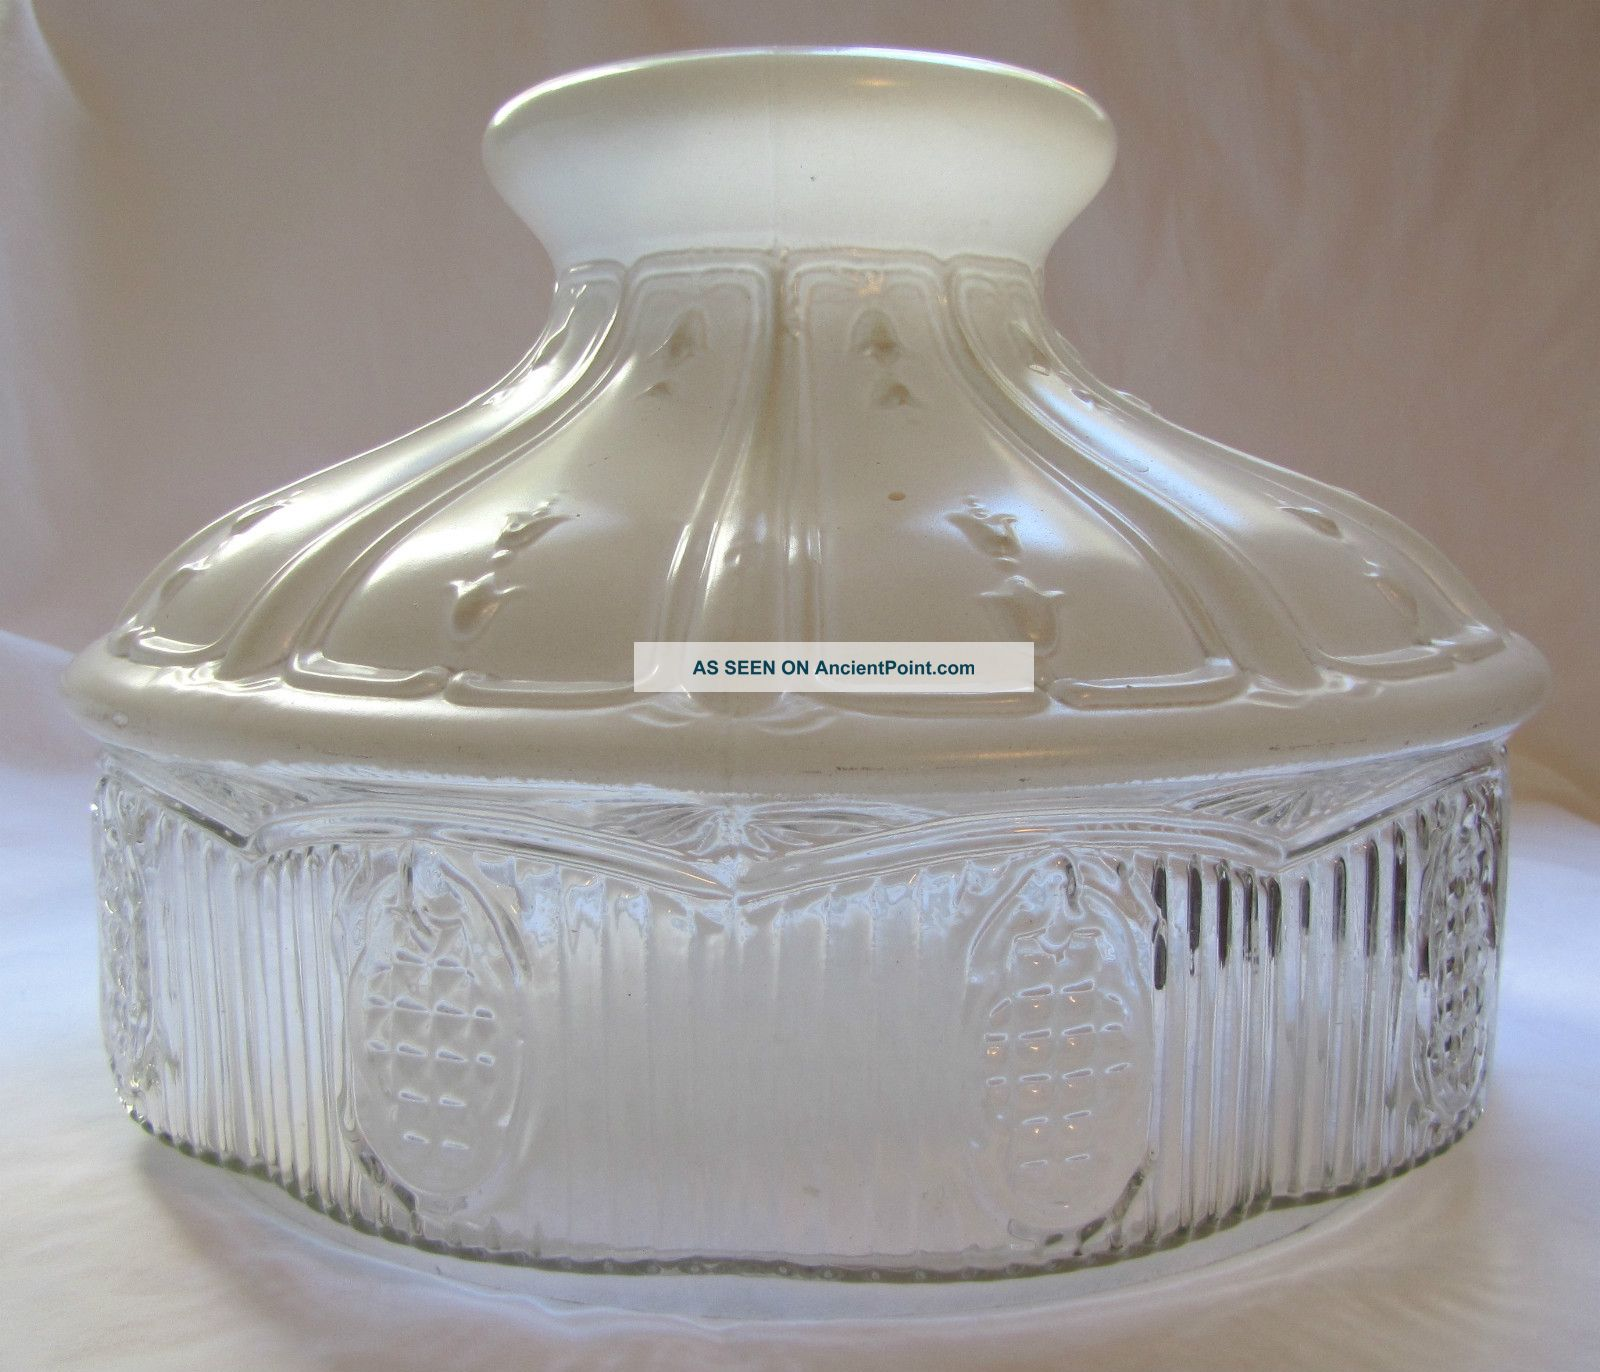 Vintage aladdin 501 glass lamp shade white clear glass aloadofball Images